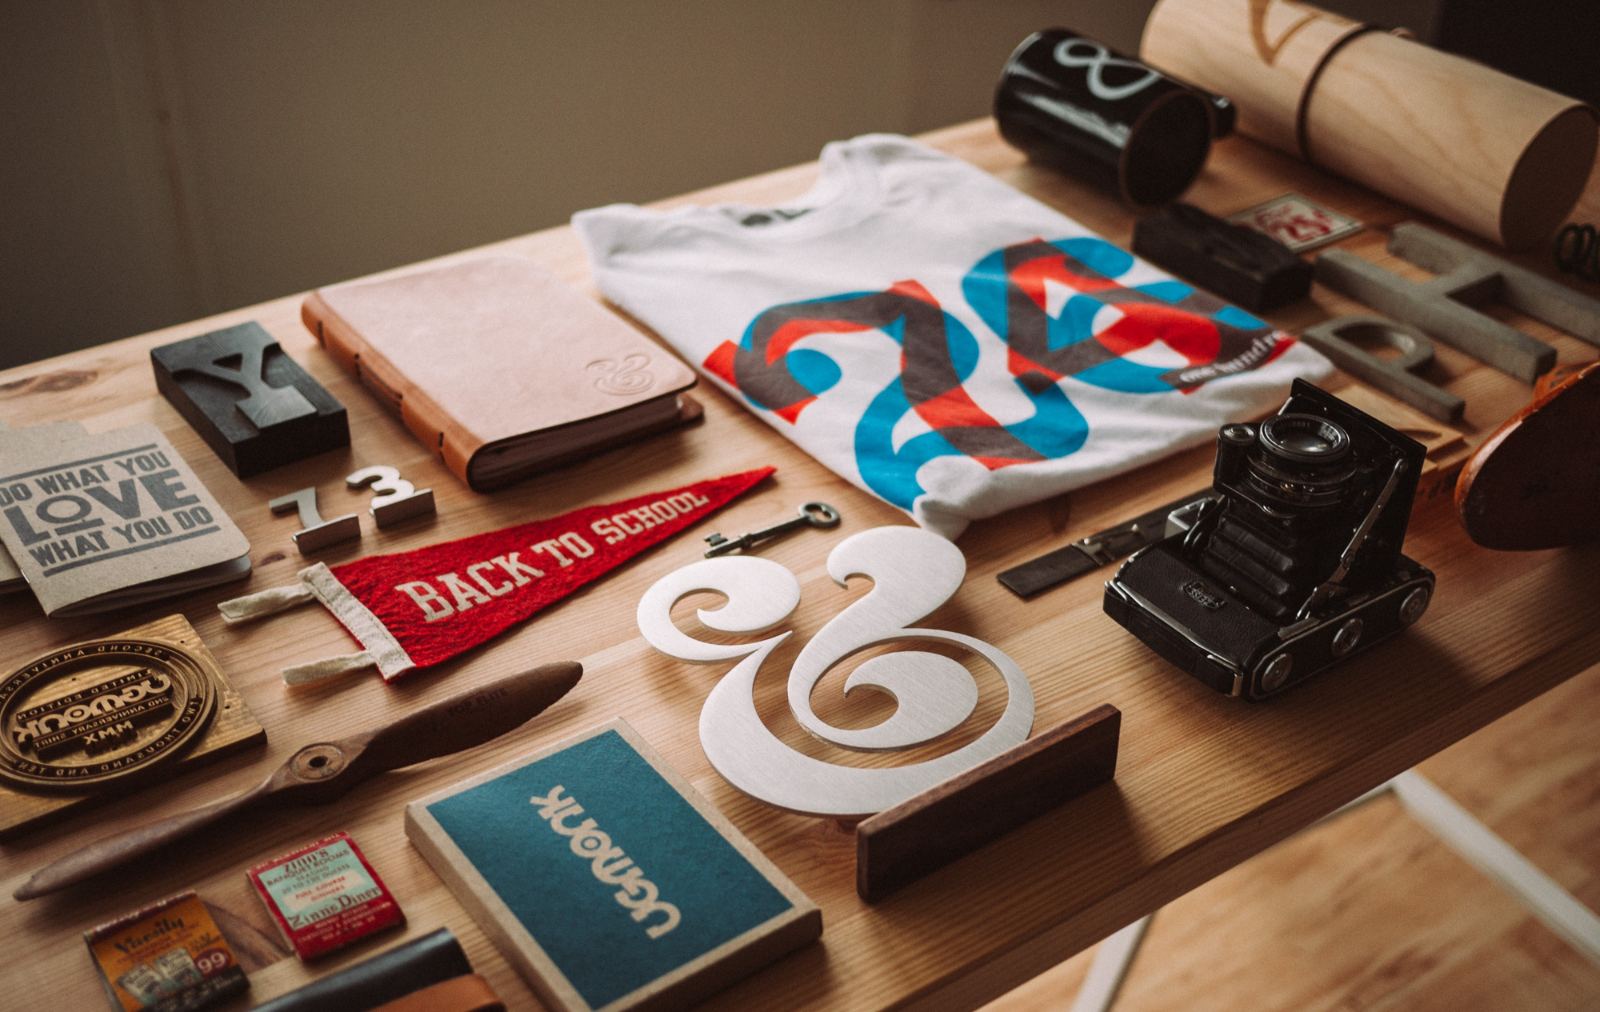 Importance of Brand Strategy shown on Branded Marketing Collateral